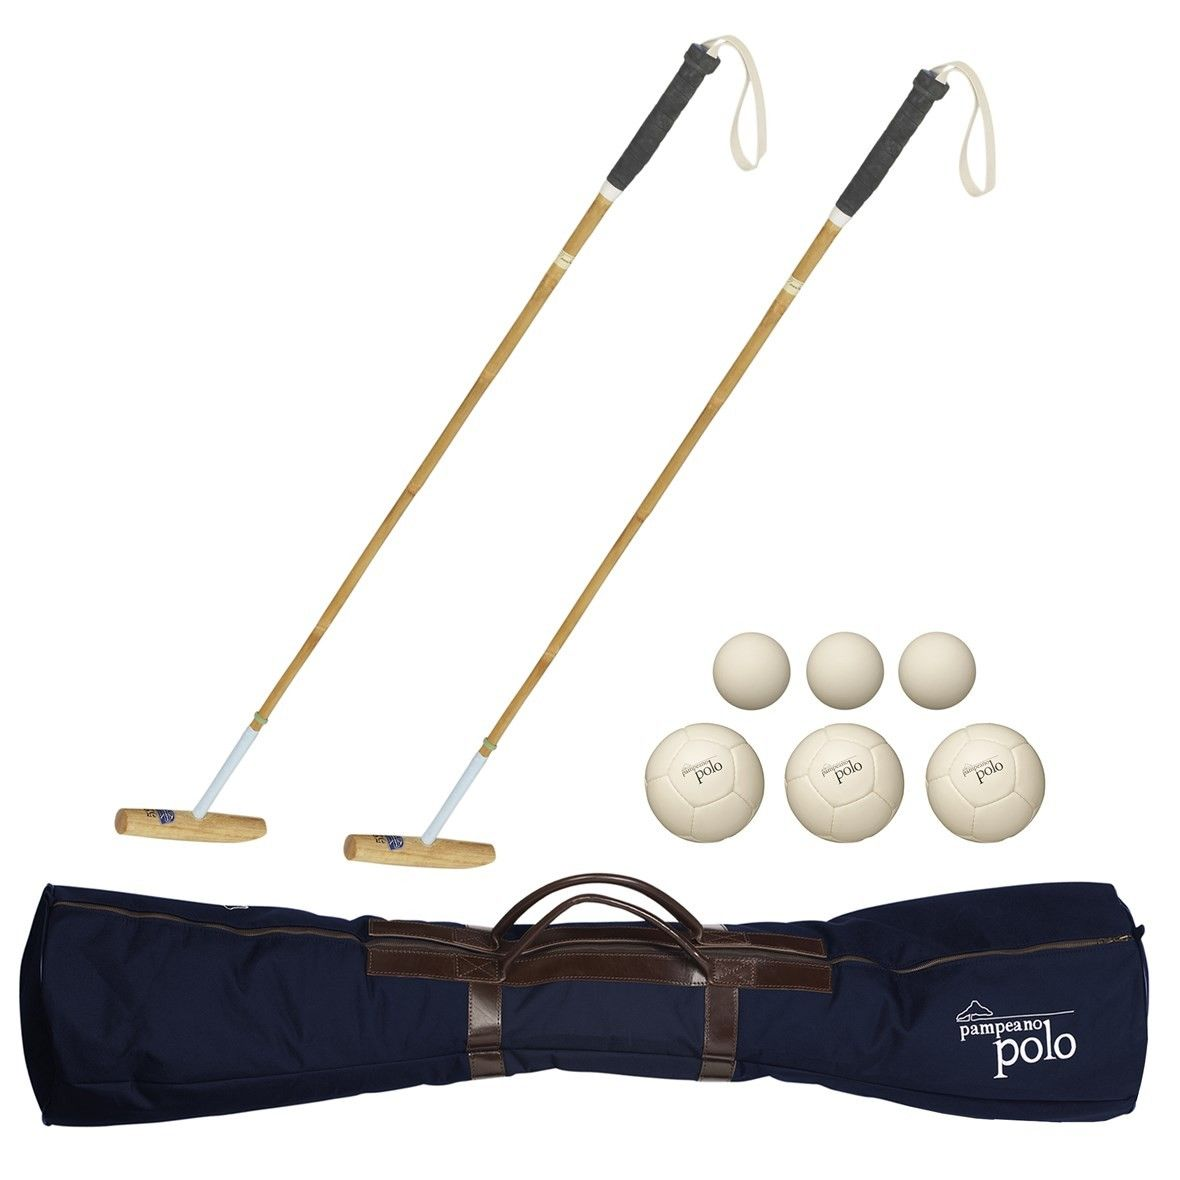 Polo Mallet Bag and Balls Kit 47262c243f1ce